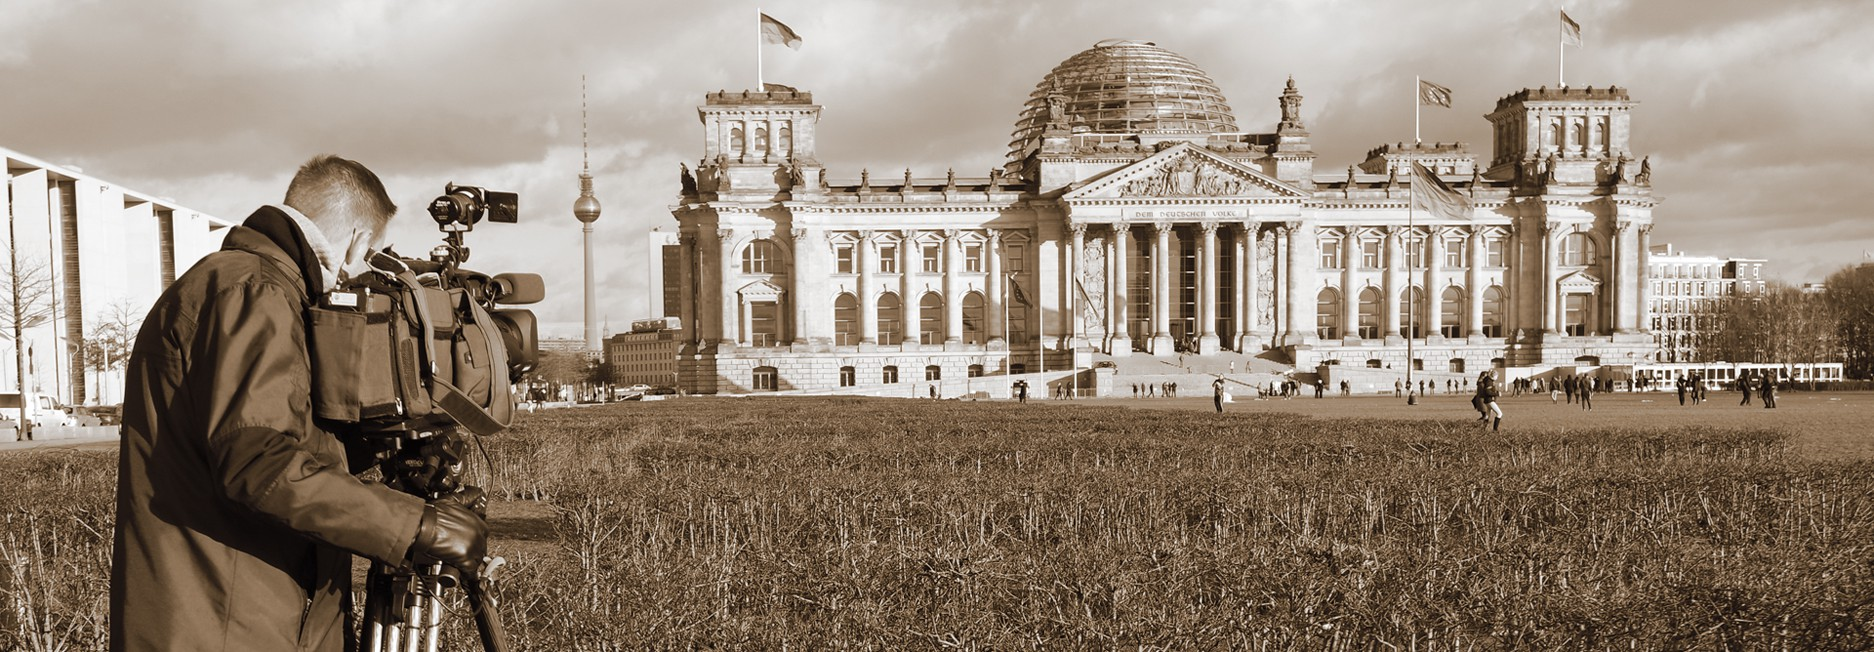 Production Reichstag Berlin German Parliament